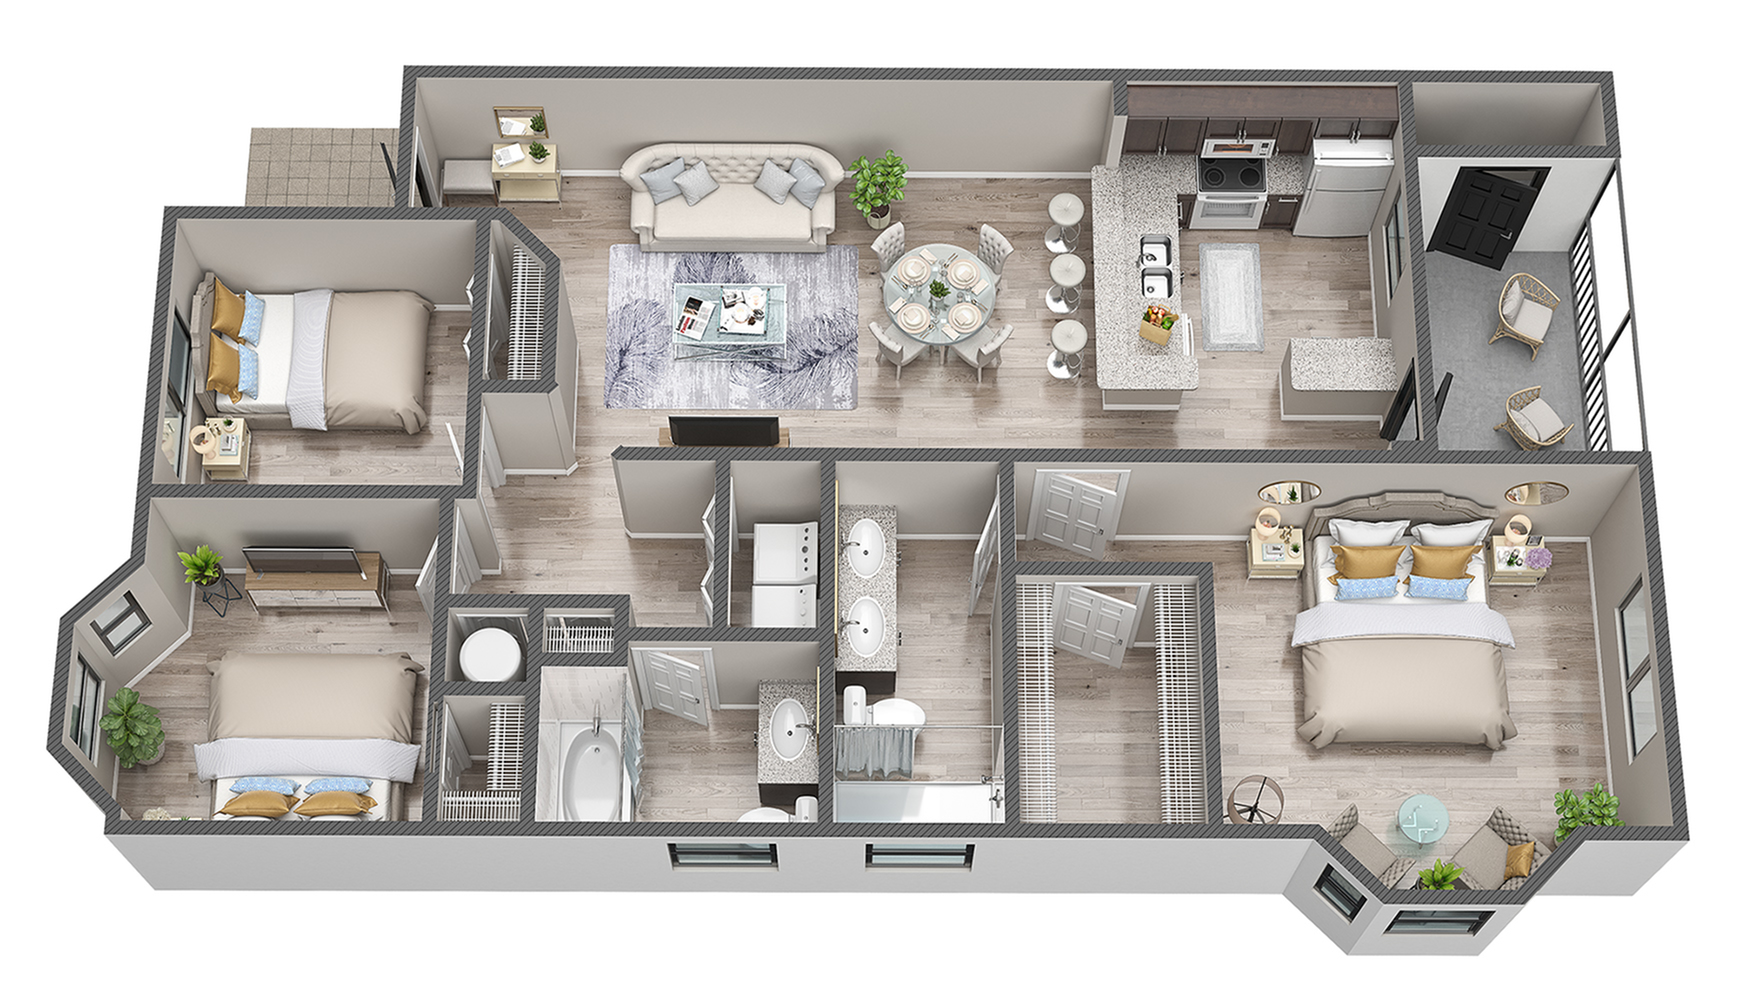 3 Bedroom 2 Bath Floorplan